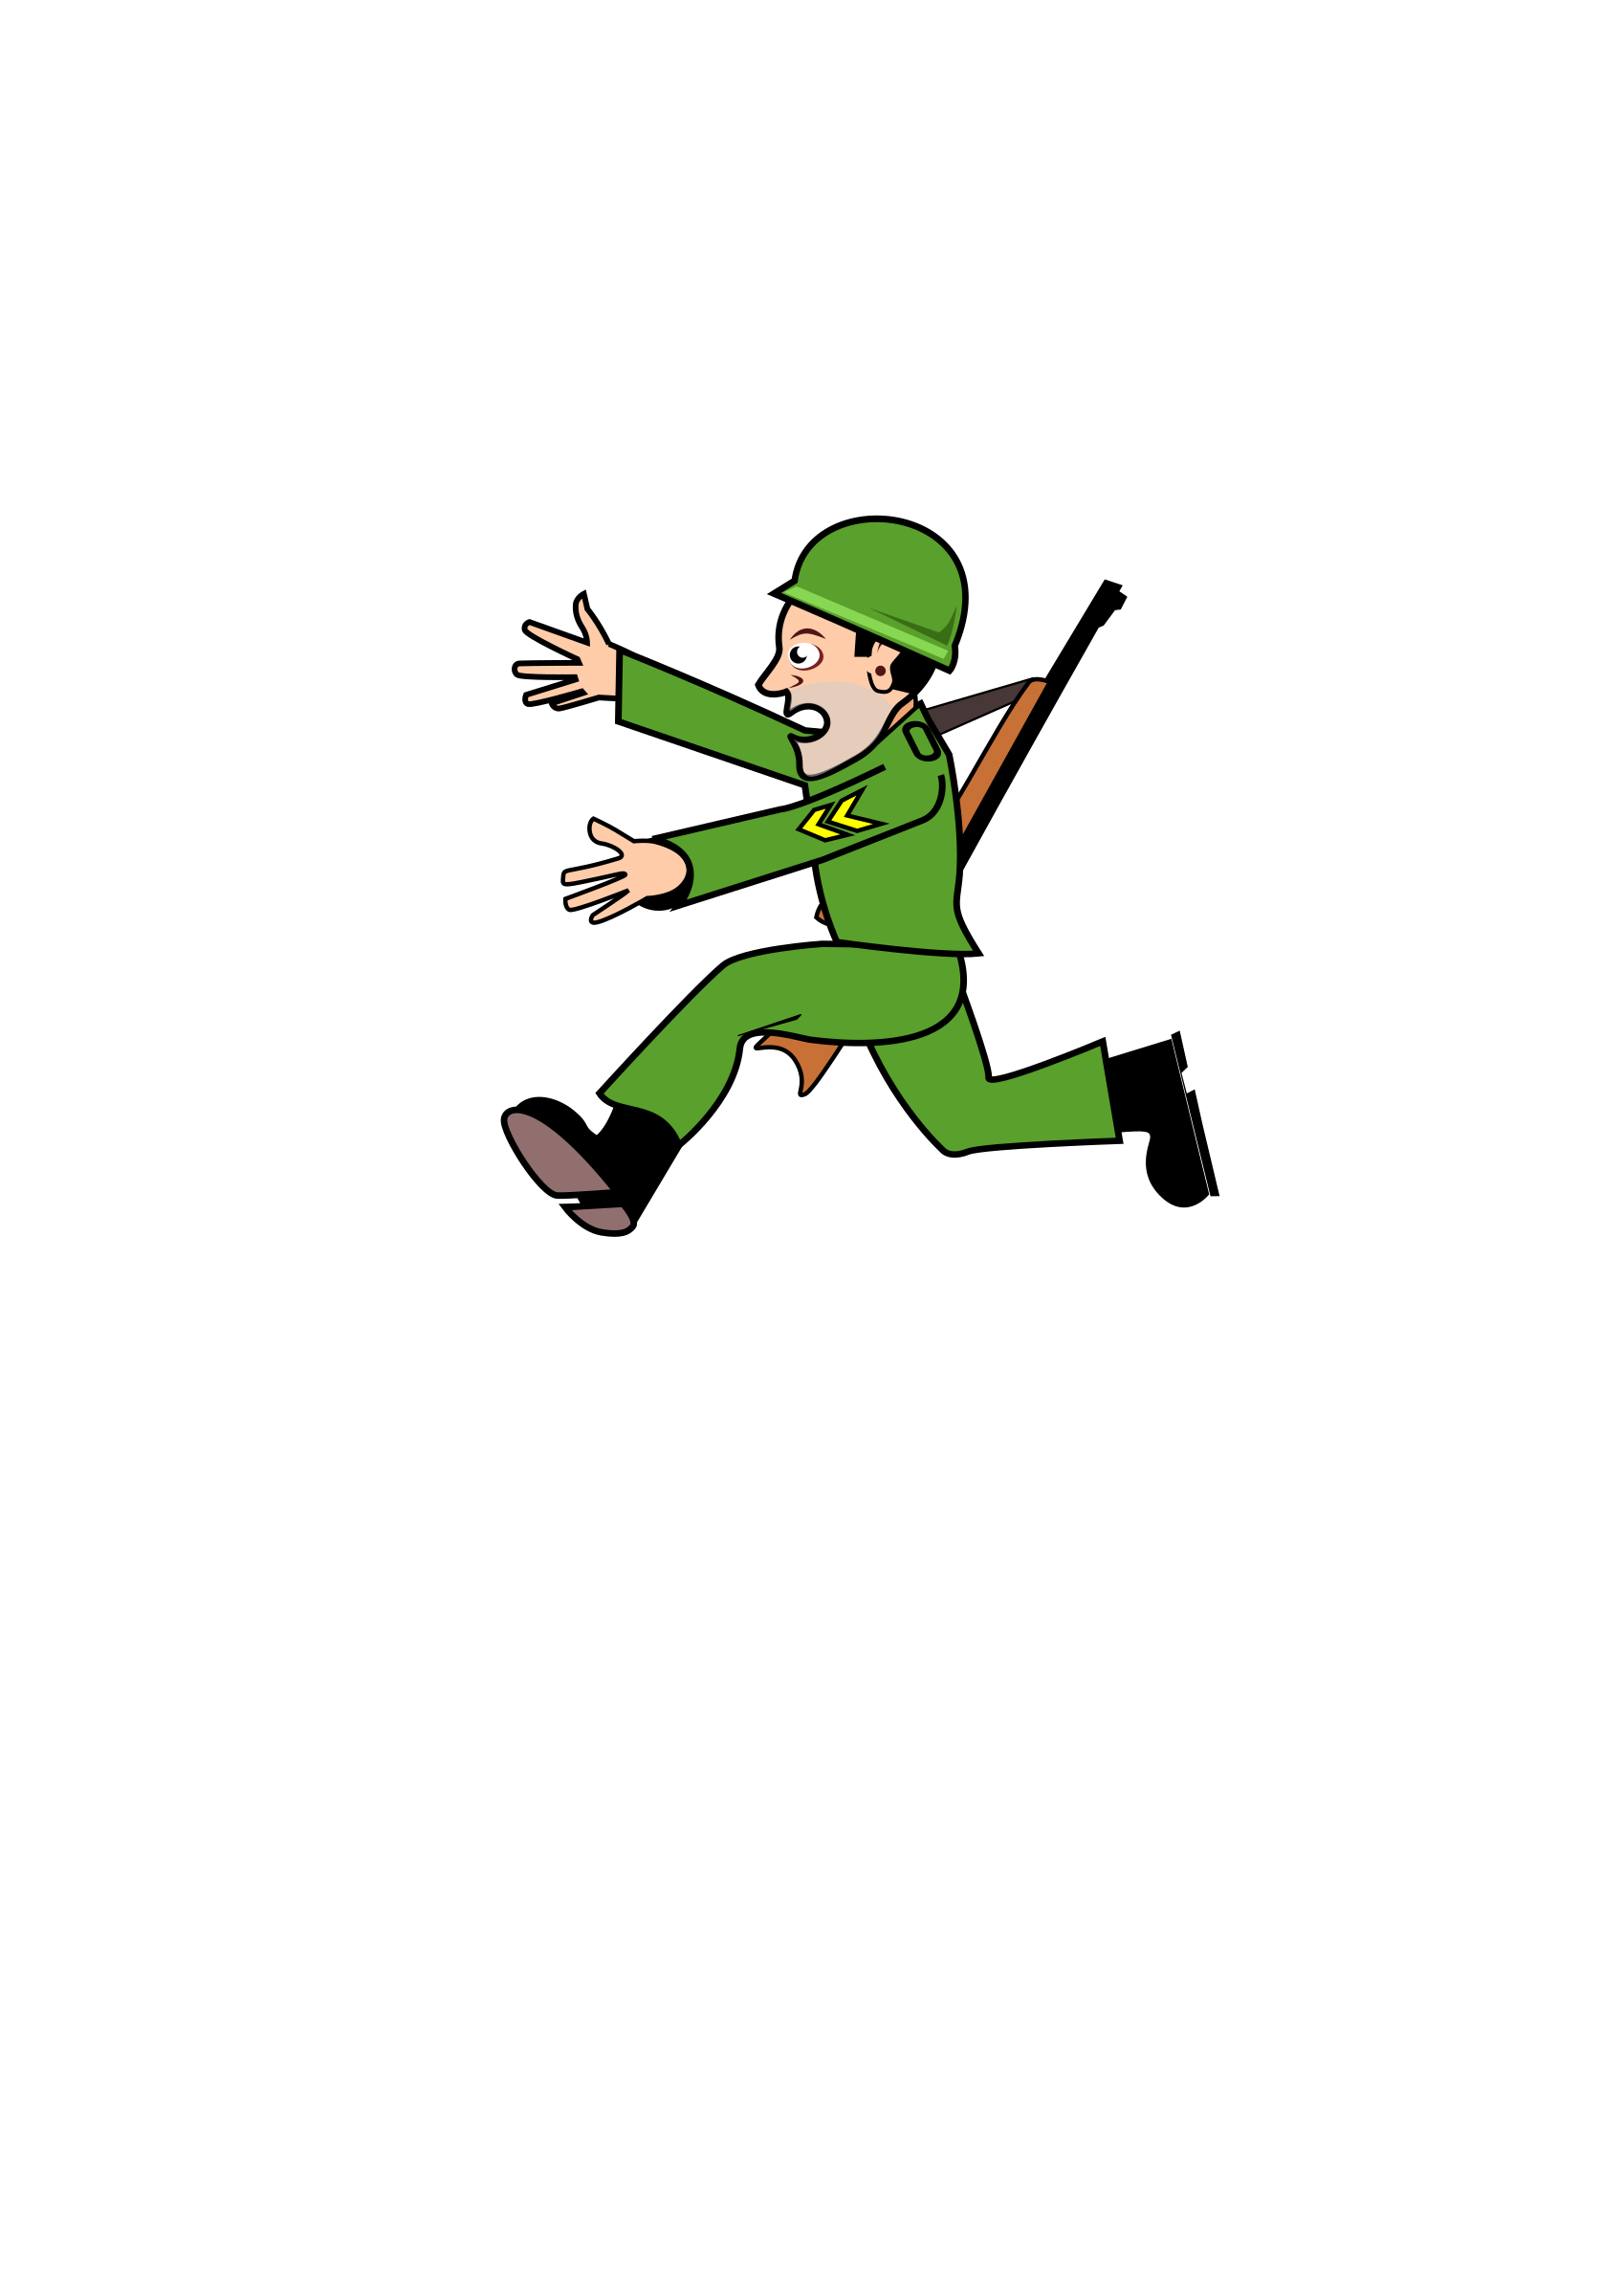 Running away png. Soldiergreen icons free and